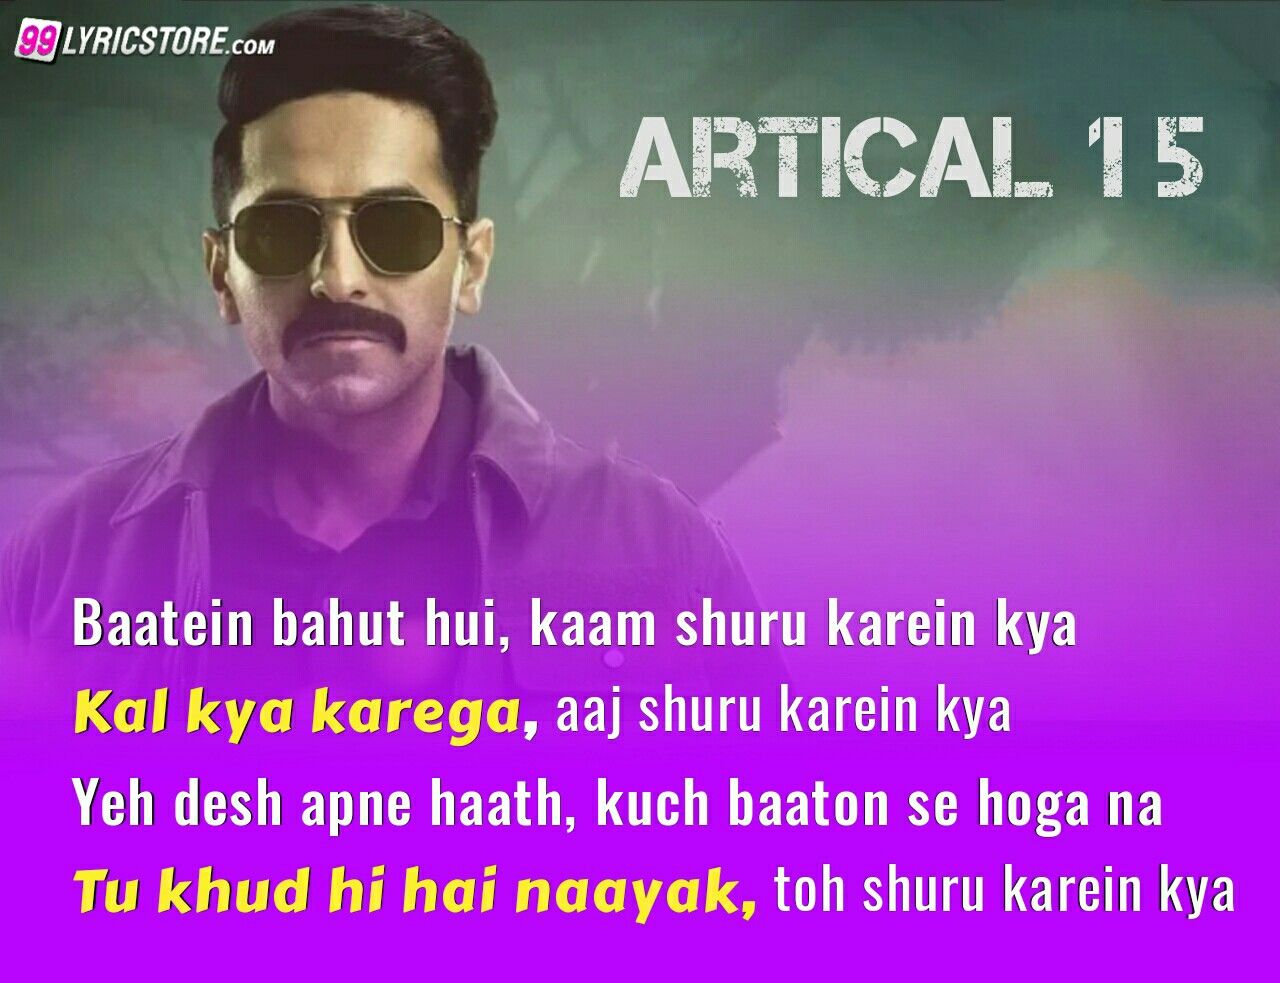 Shuru Karein Kya Rap Song From Ayushmaan Khurrana Movie 'Artical 15'